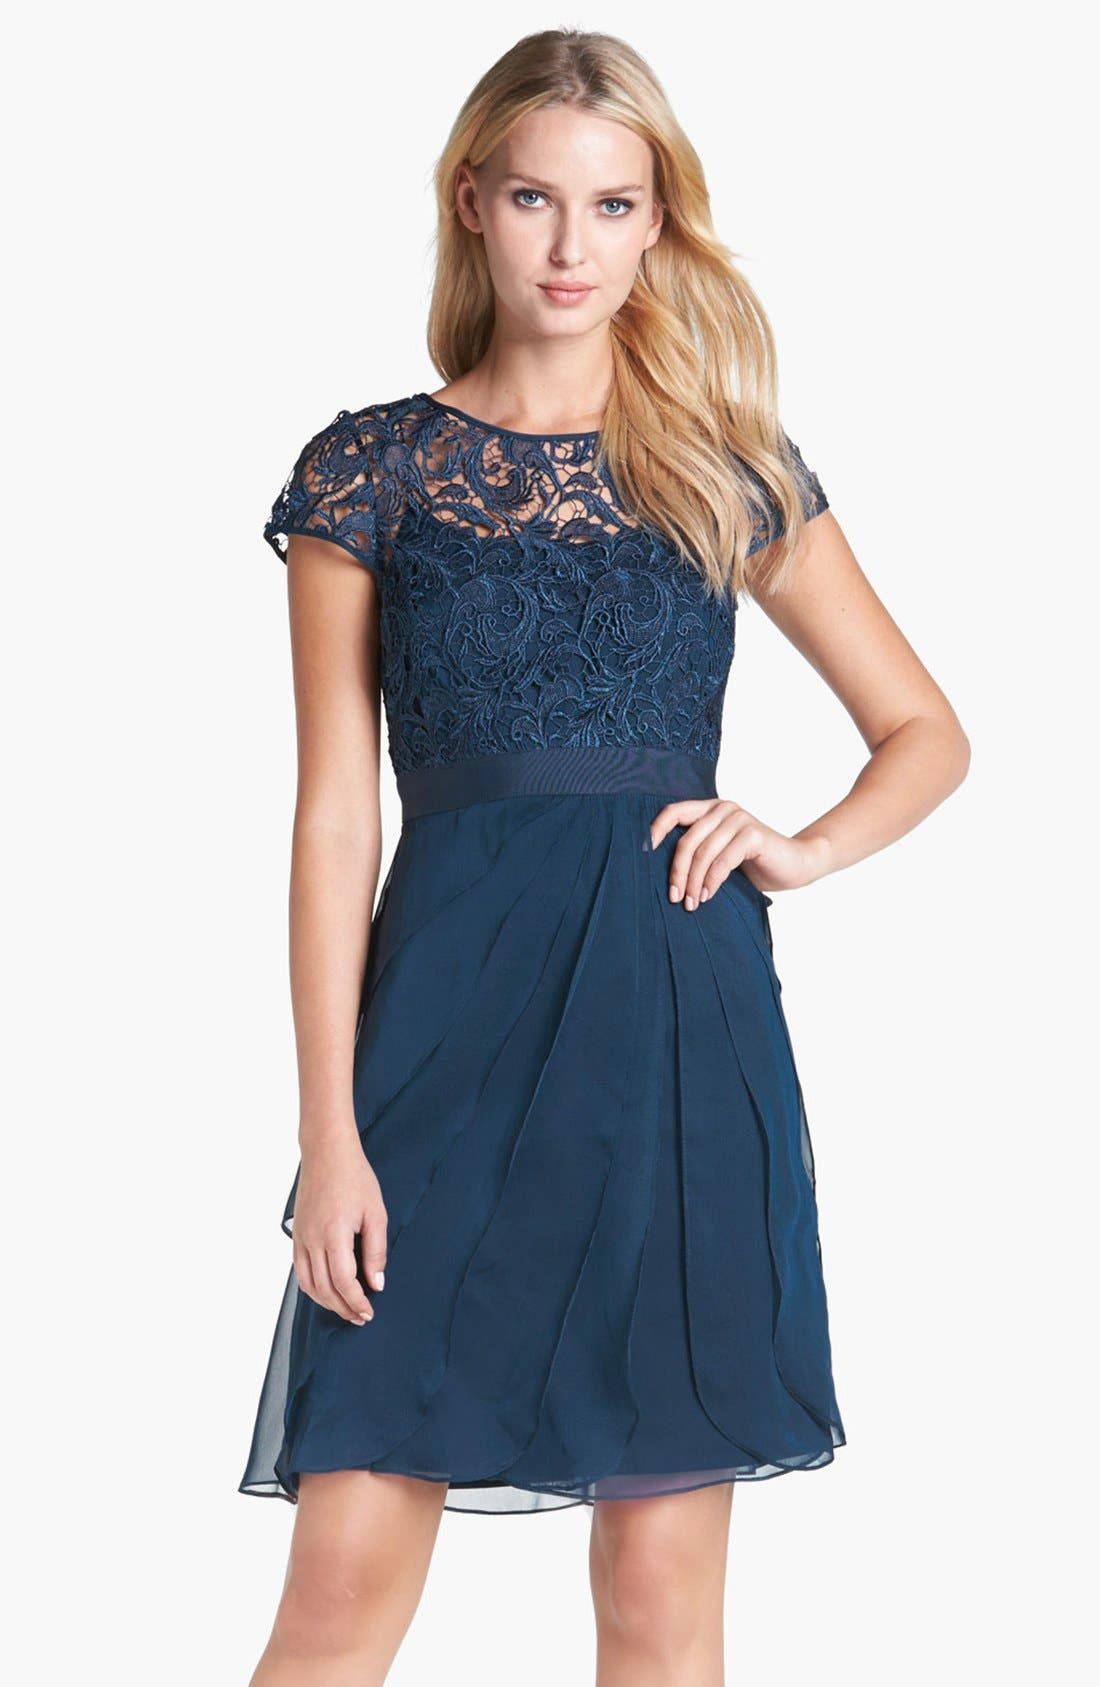 Alternate Image 1 Selected - Adrianna Papell Lace & Tiered Chiffon Dress (Regular & Petite)